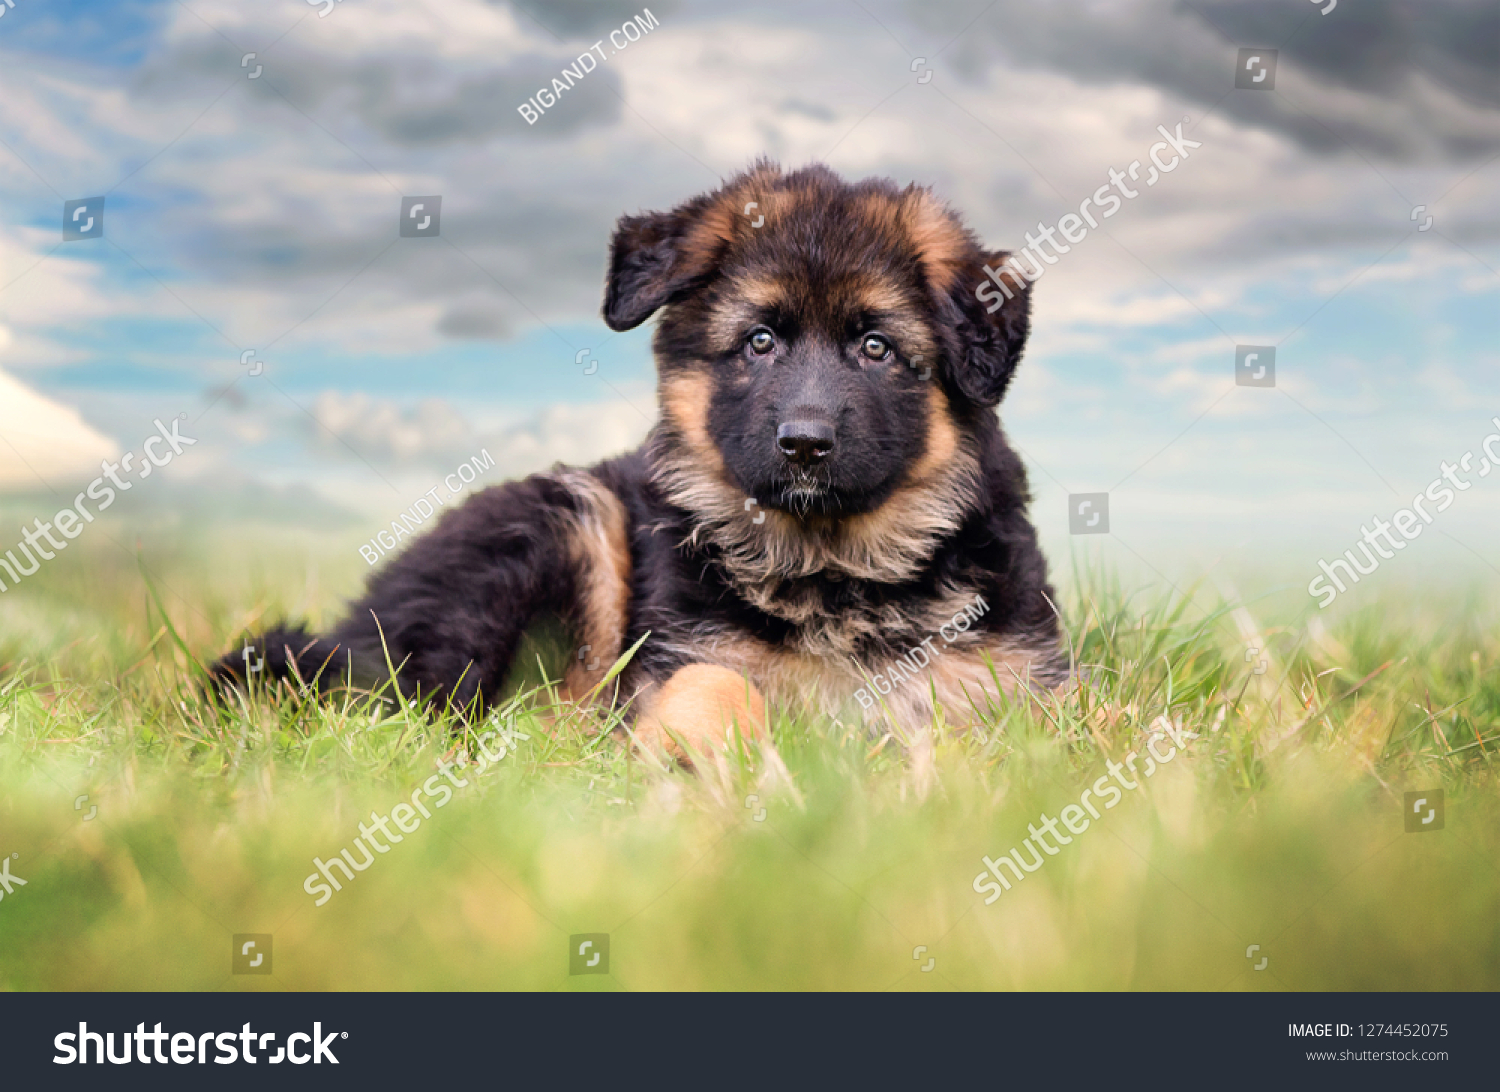 German Shepherd dog puppy  #1274452075